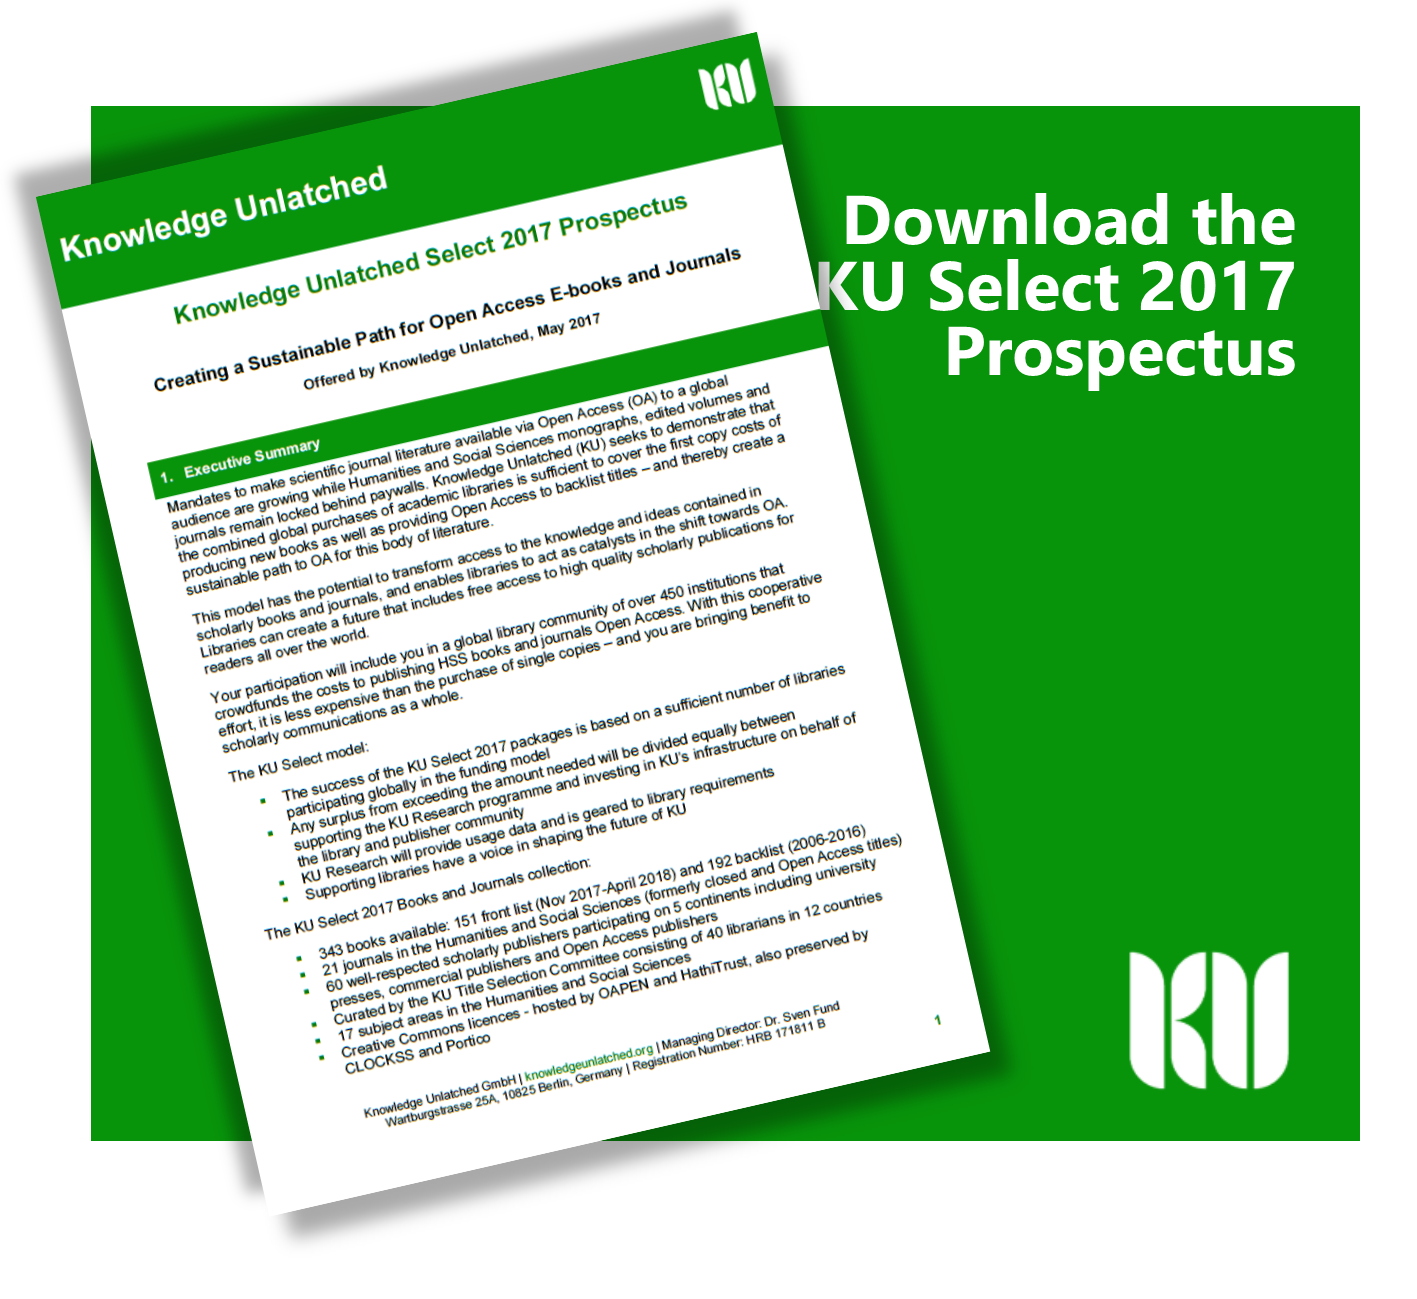 KU Select 2017_Prospectus_download